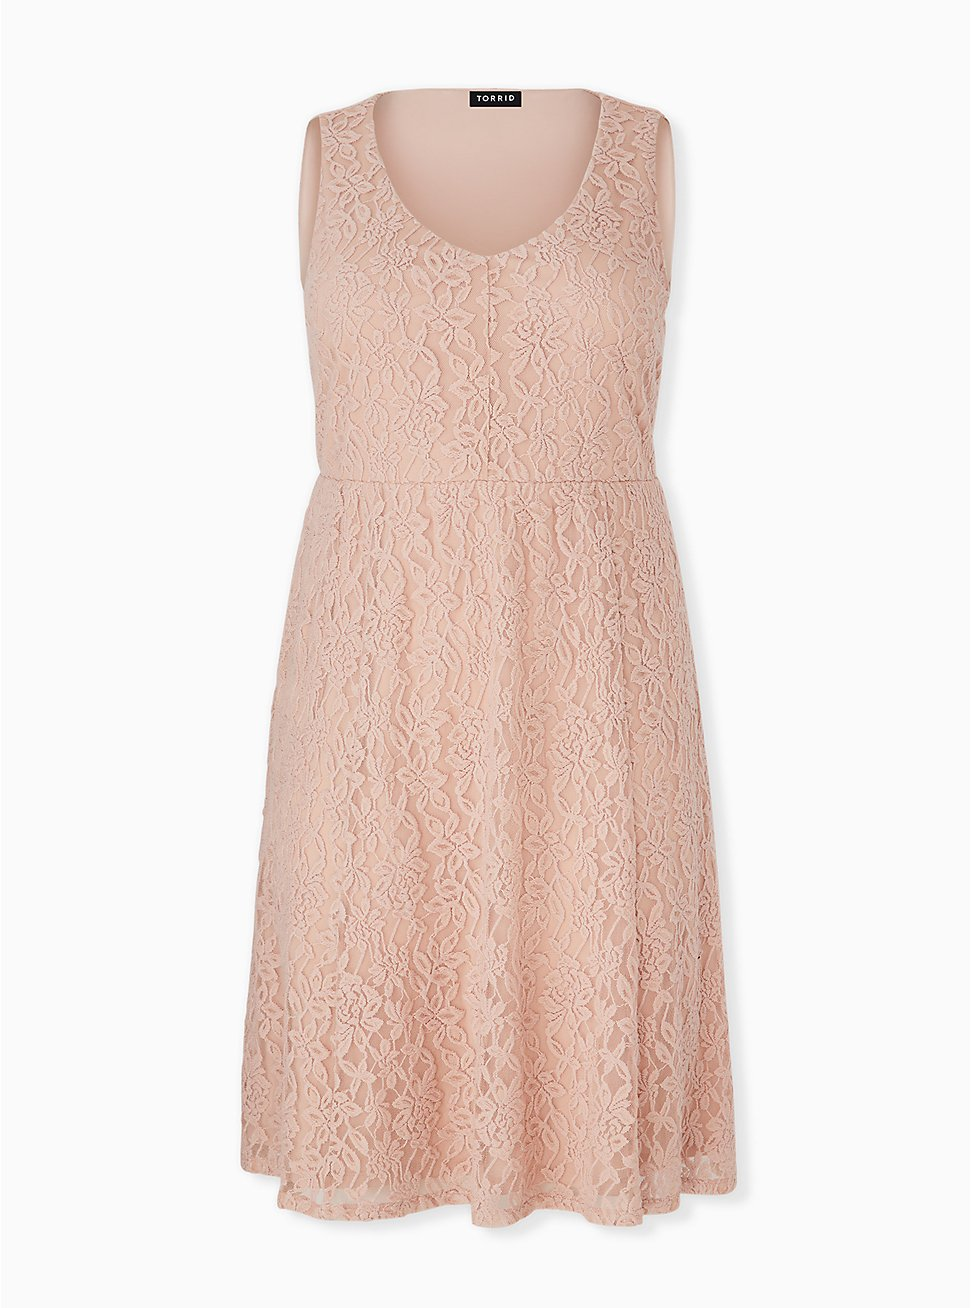 Plus Size Pale Pink Lace Midi Dress, ROSE DUST, hi-res